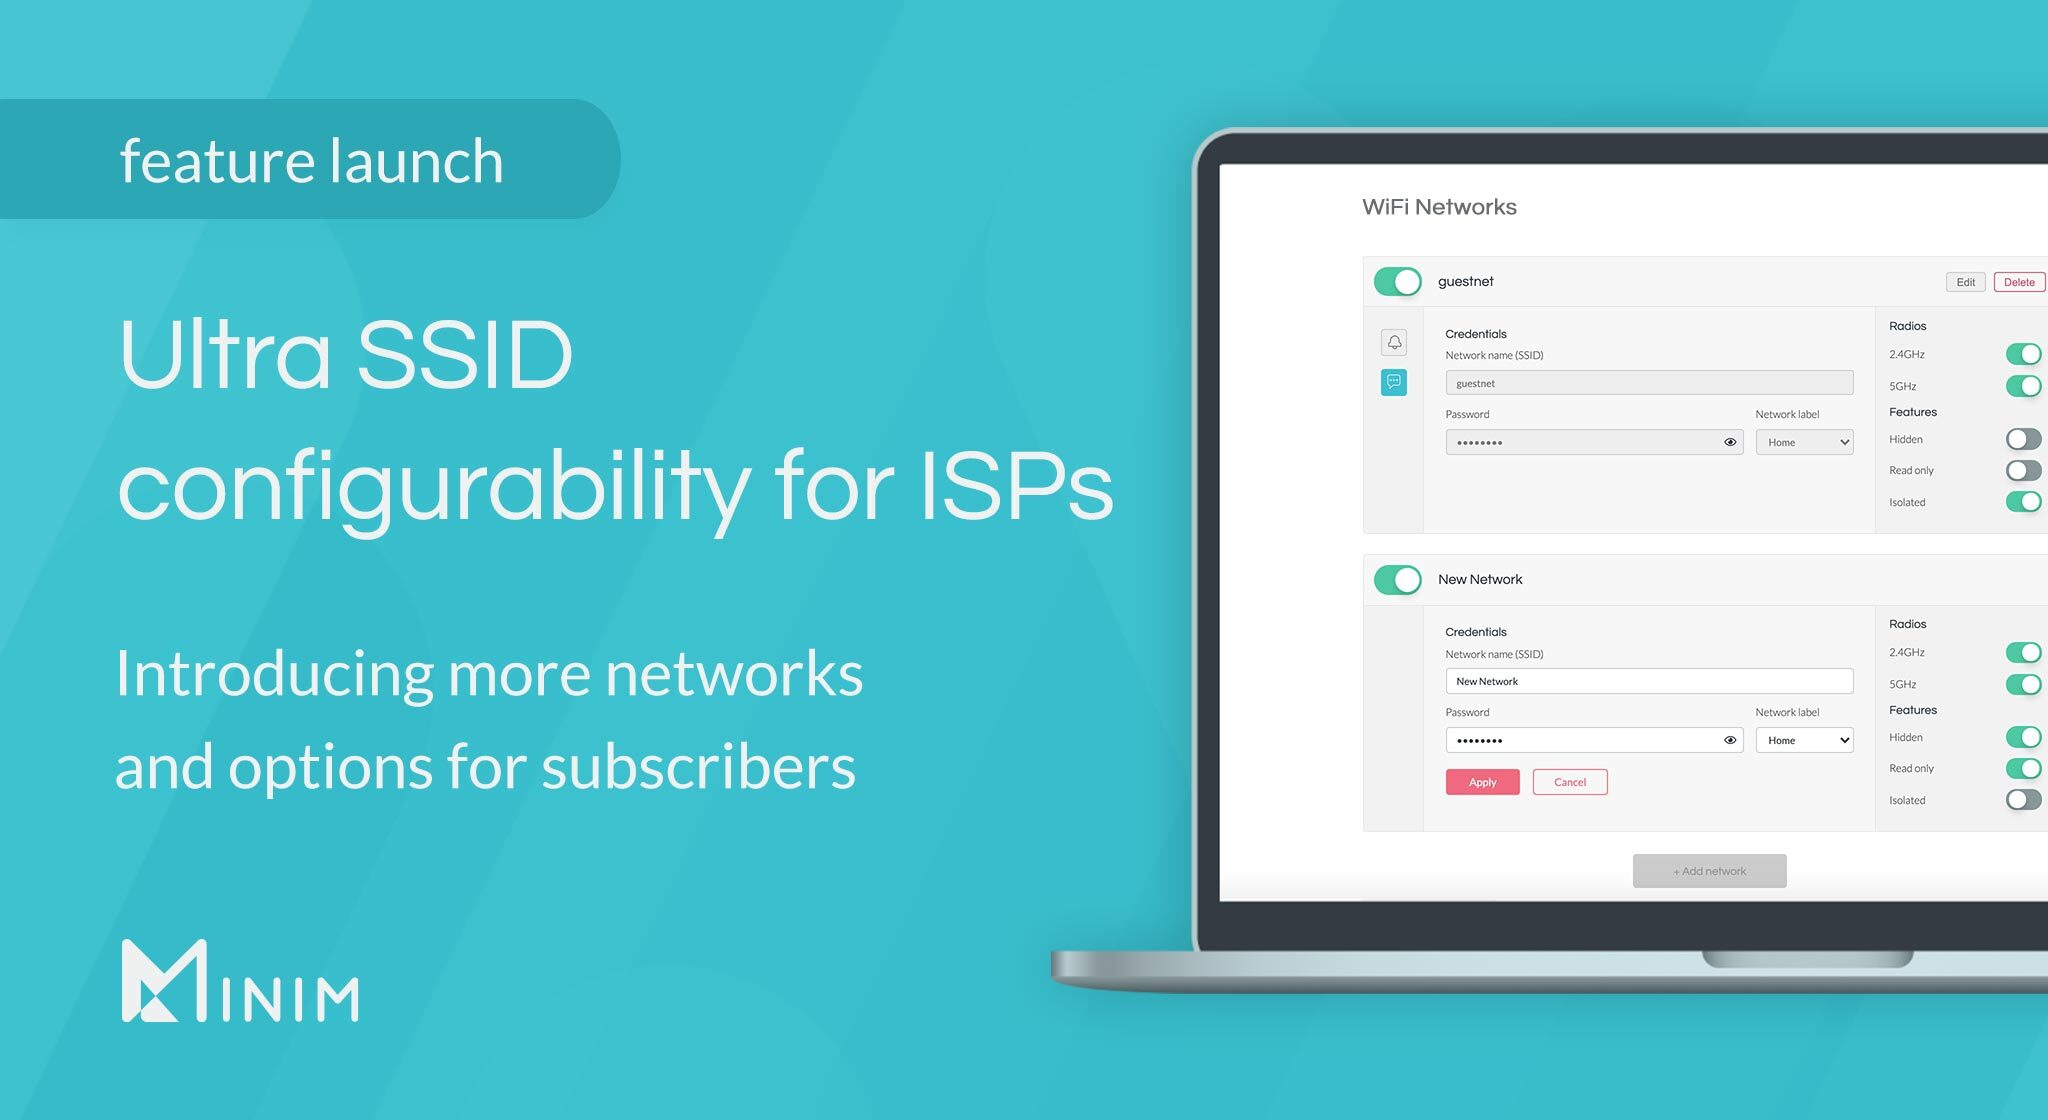 Introducing Ultra SSID configurability for ISPs